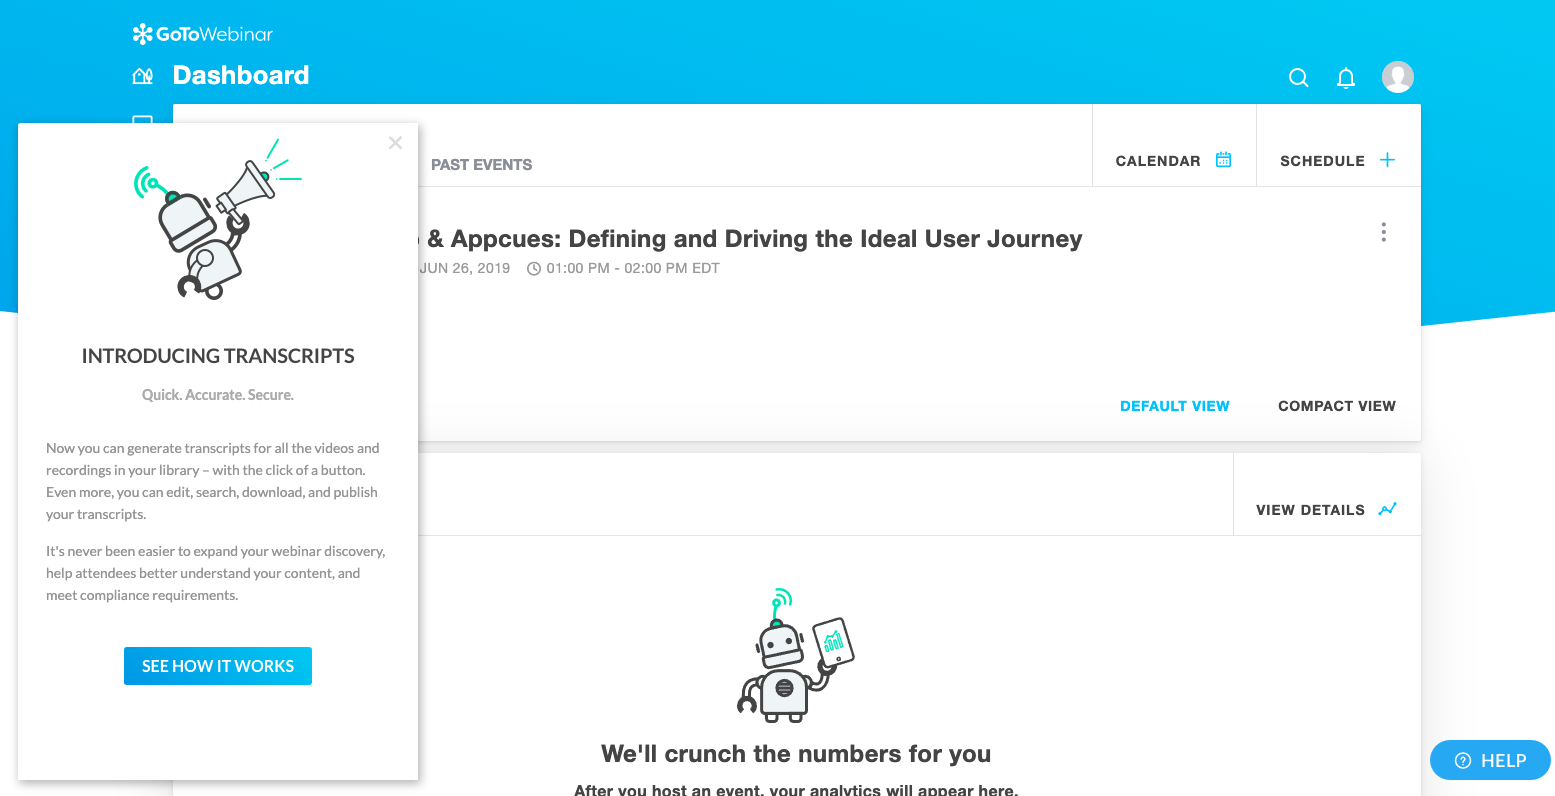 go to webinar in-app feature announcement made with appcues